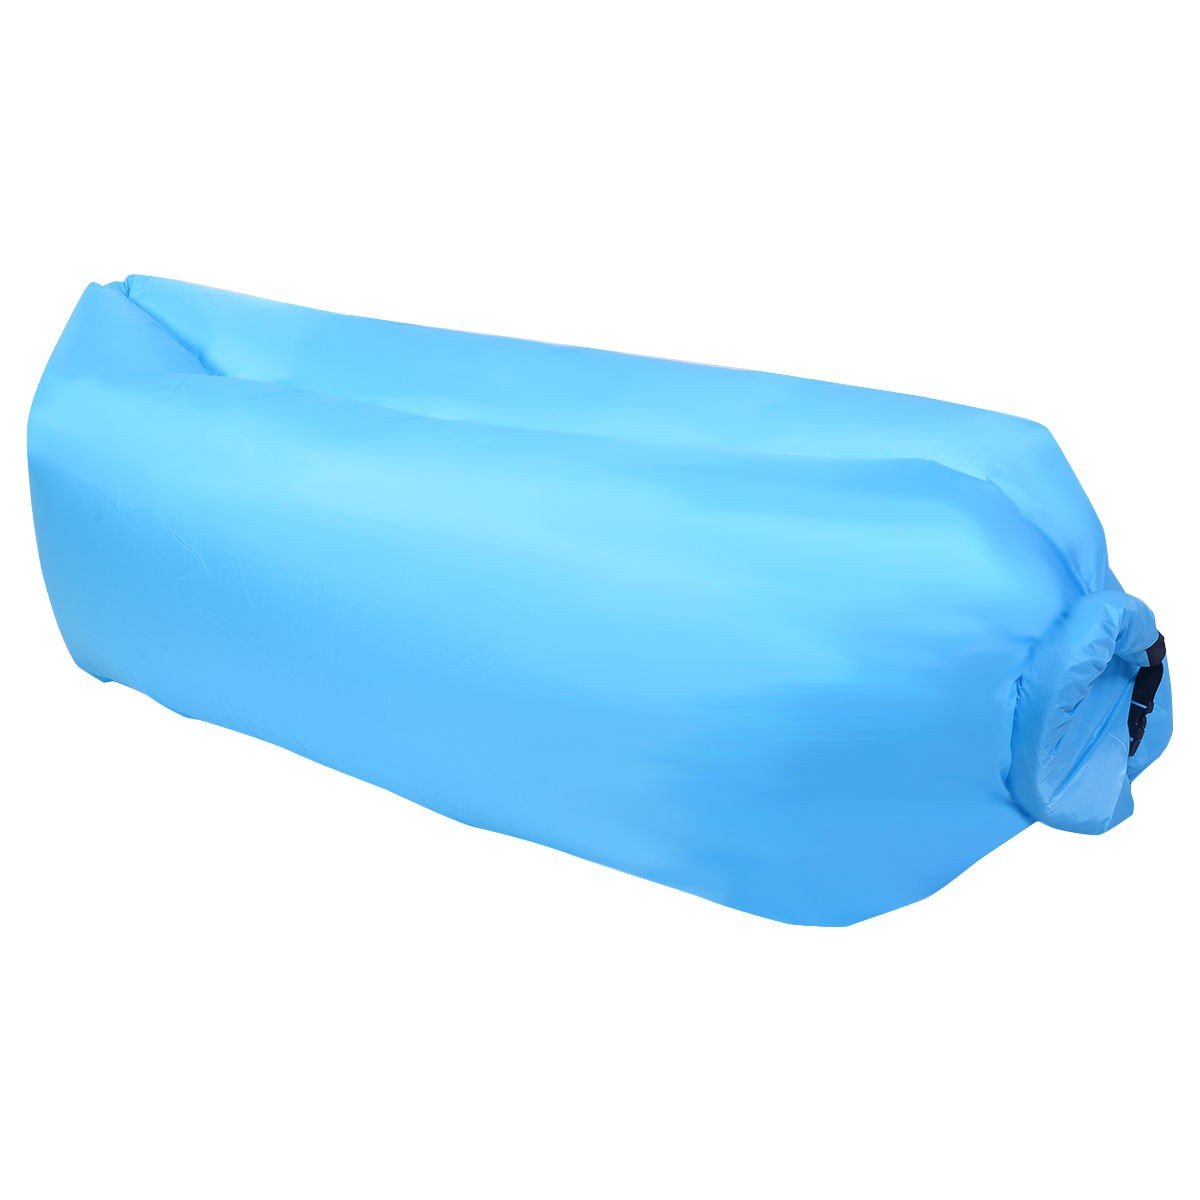 Inflatable Air Bed Lazy Sofa Bed